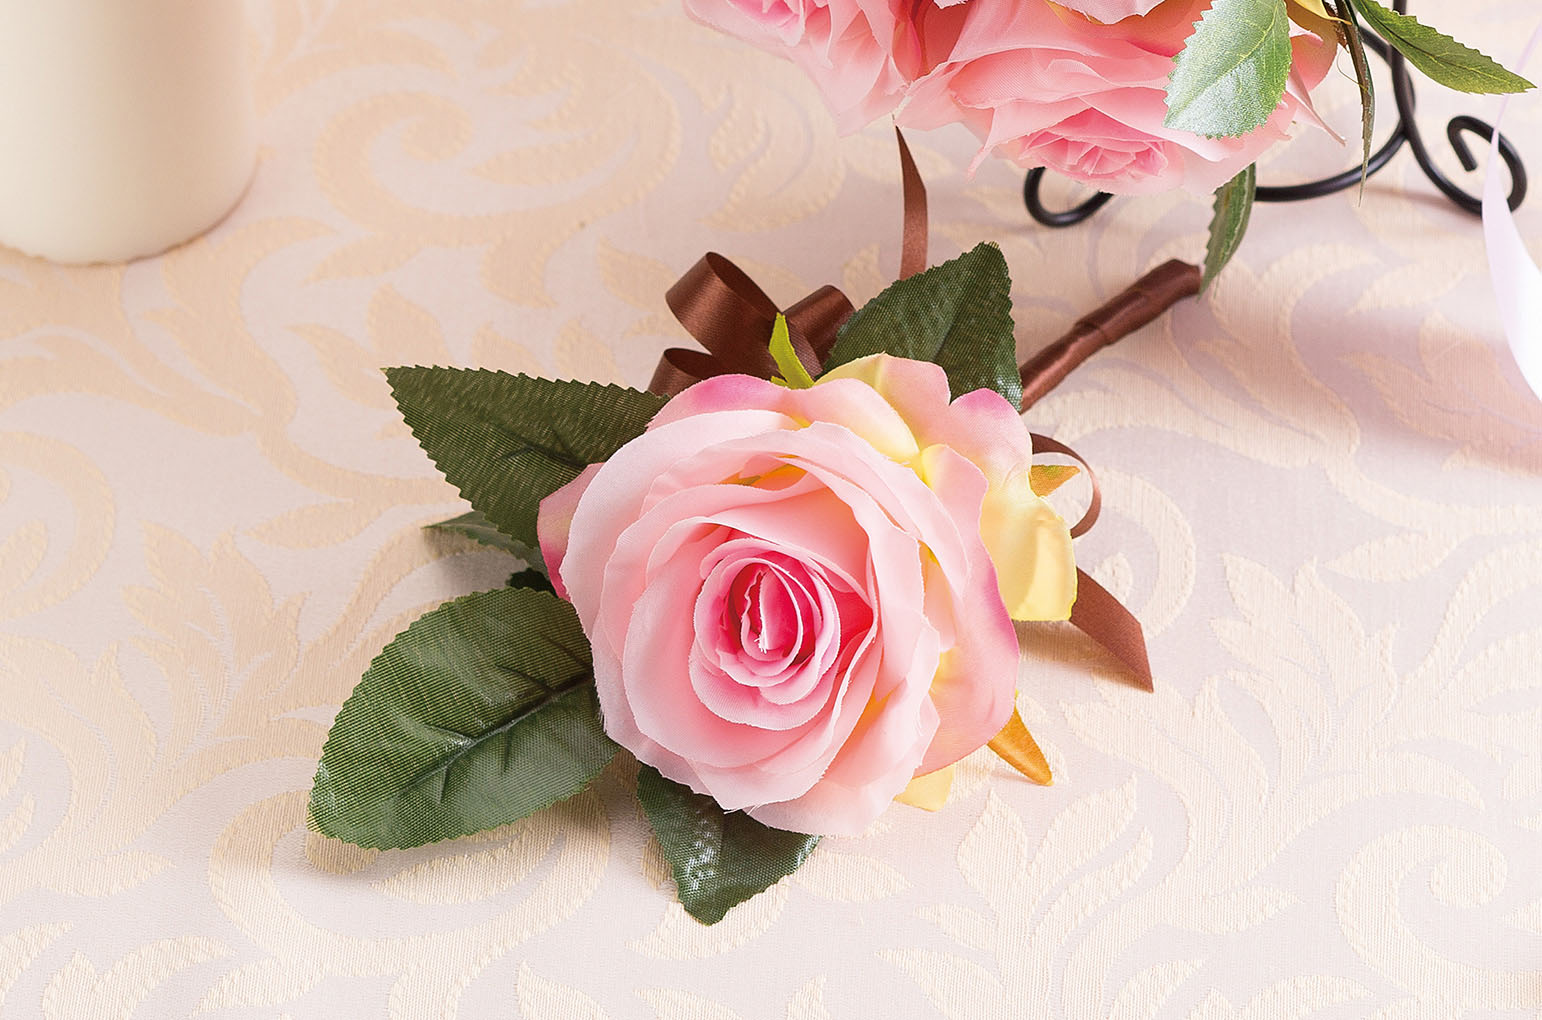 Silk bouquet Suger pinkシルクブーケ シュガーピンク